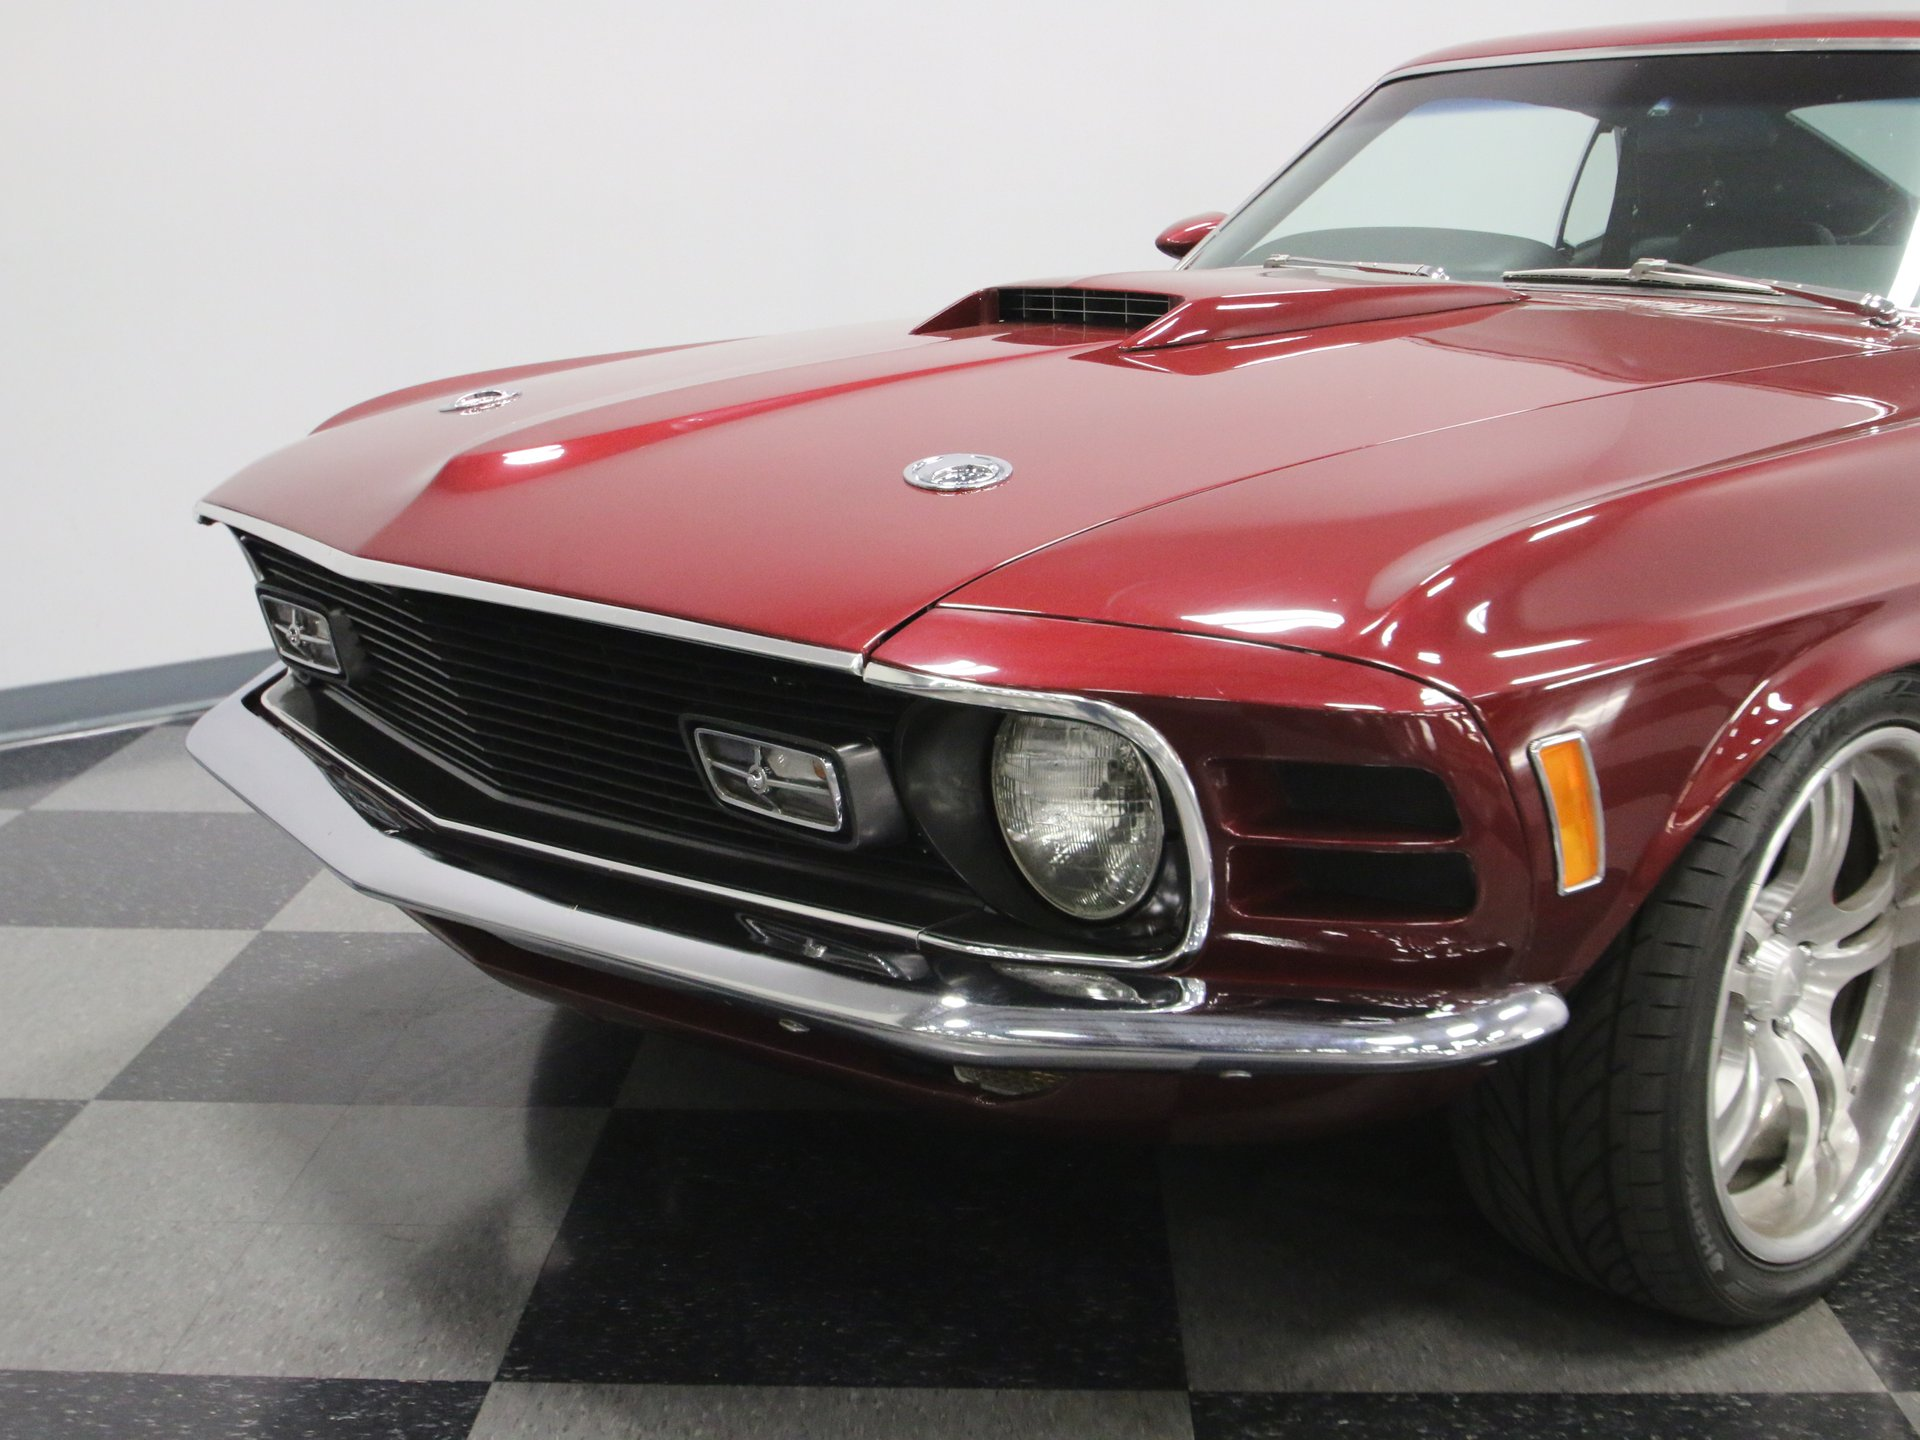 1970 Ford Mustang Streetside Classics The Nations Trusted Mach 1 Fastback View 360